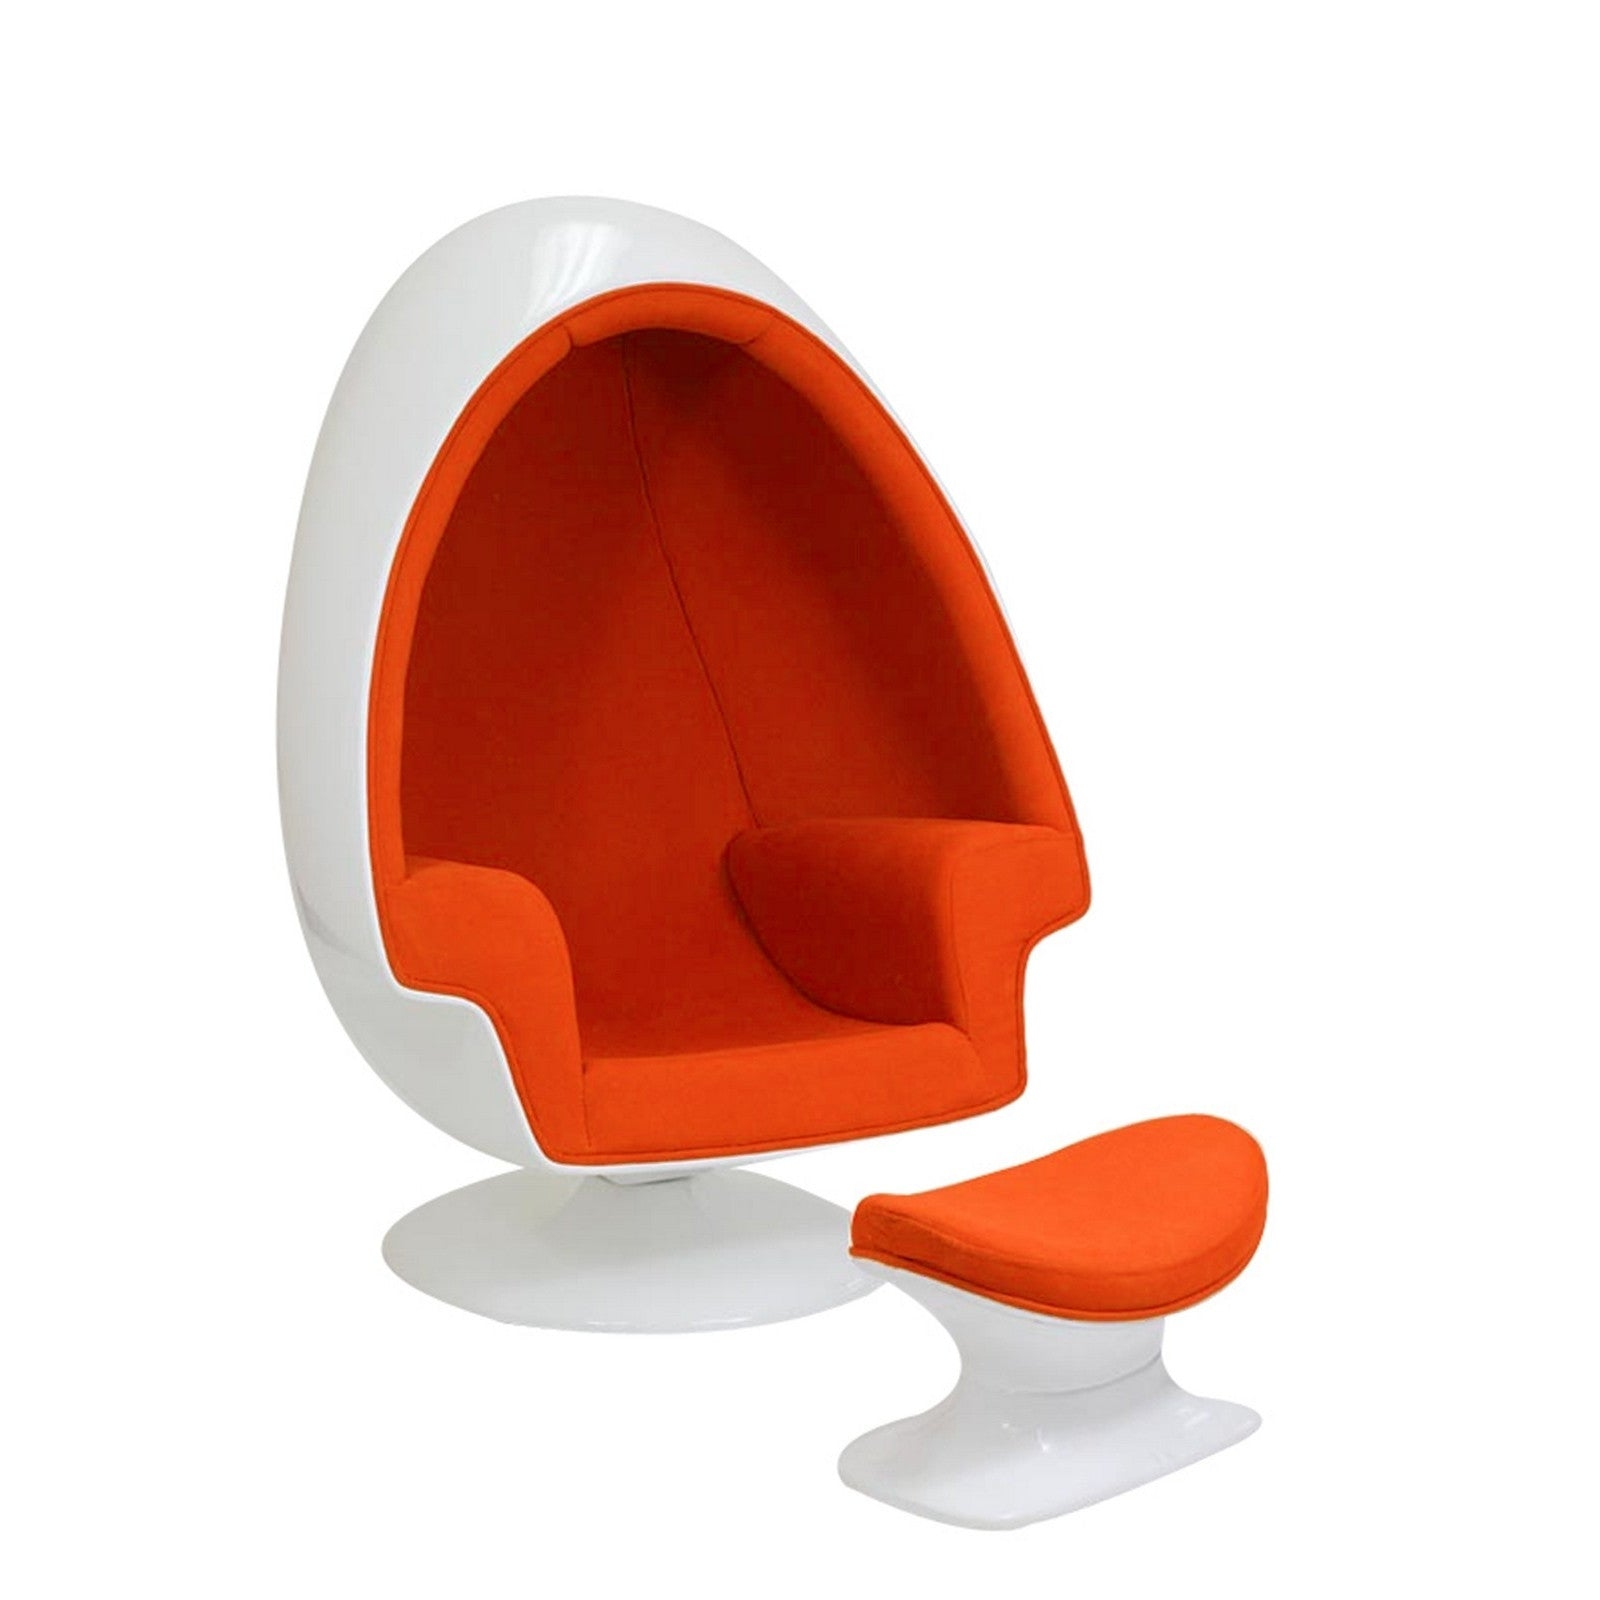 alpha shell egg chair replica emfurn. Black Bedroom Furniture Sets. Home Design Ideas